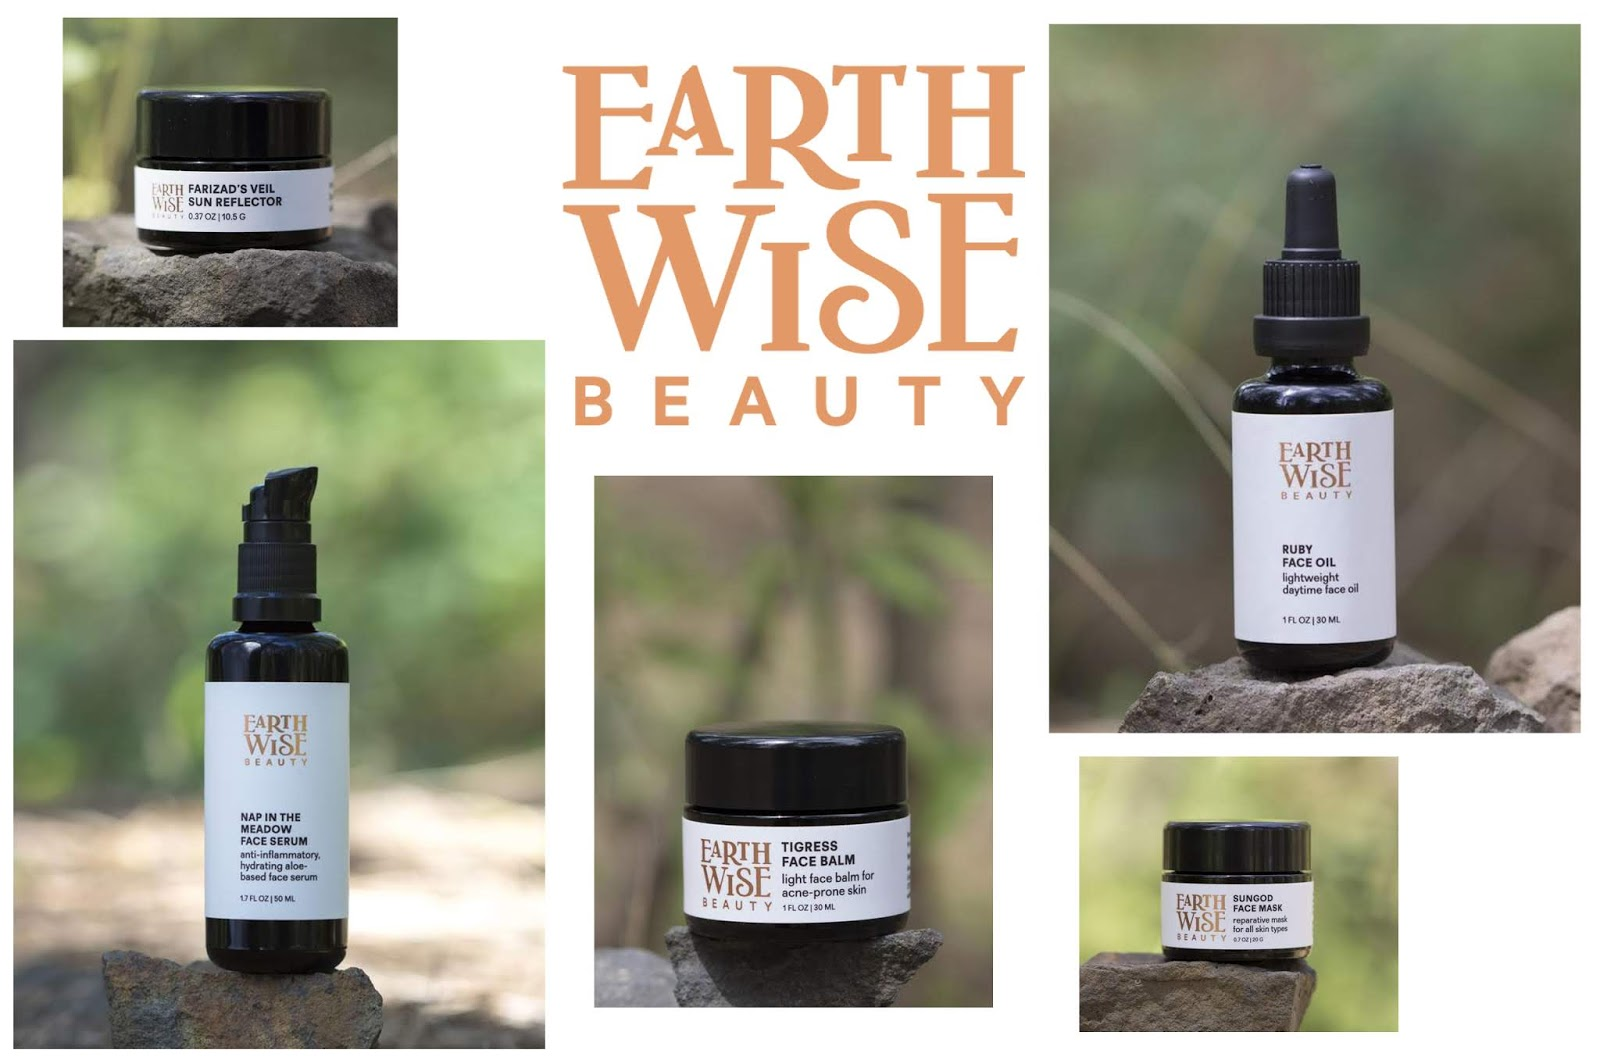 Earthwise Beauty New Packaging & Logo